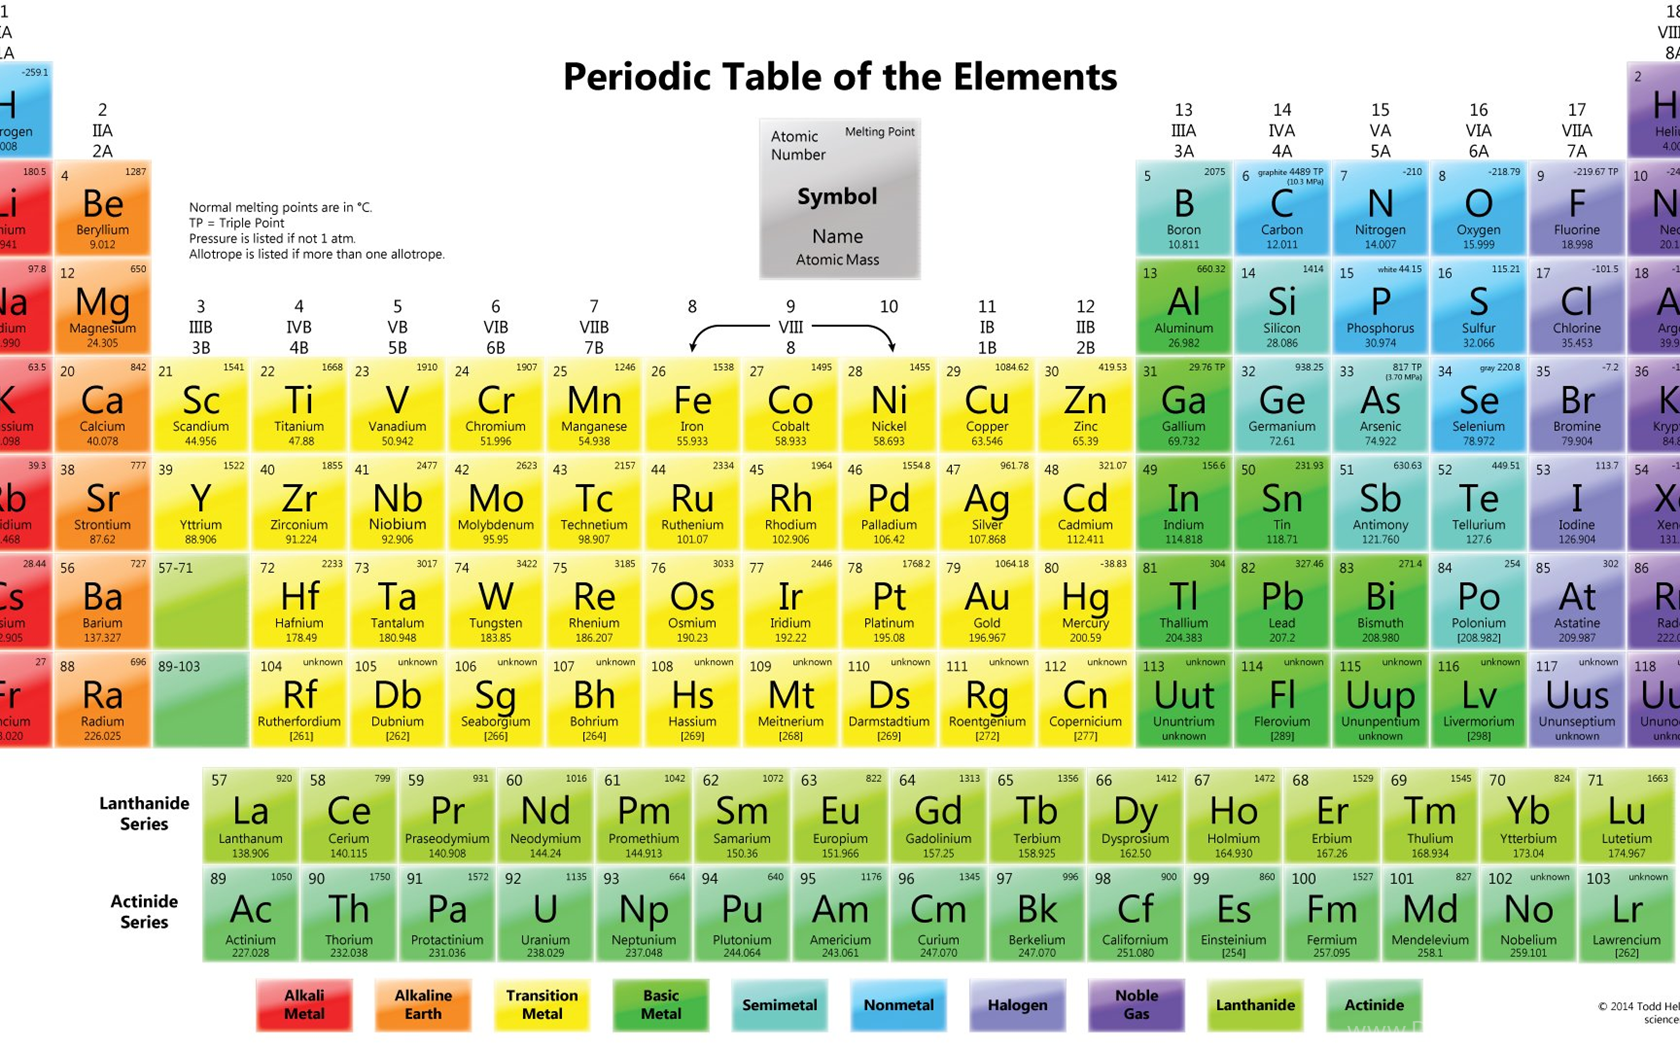 Periodic table wallpapers element melting points desktop background widescreen urtaz